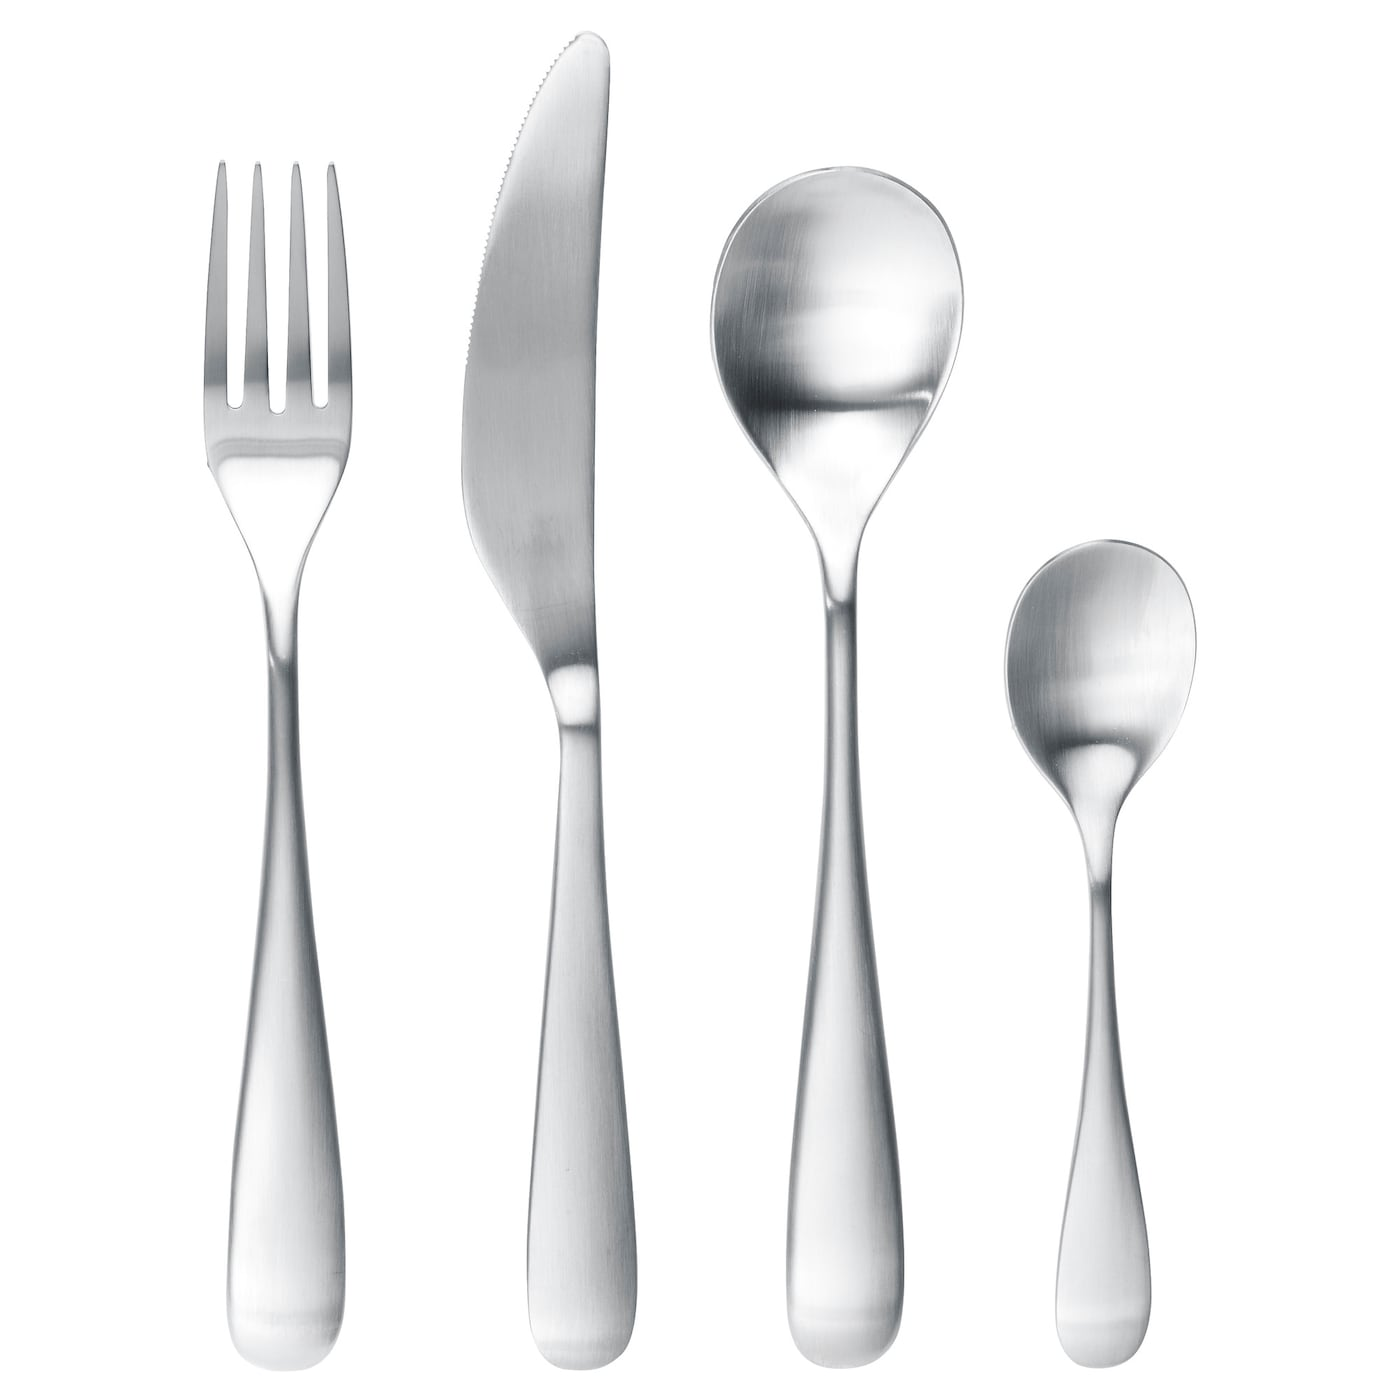 IKEA BEHAGFULL 24-piece cutlery set